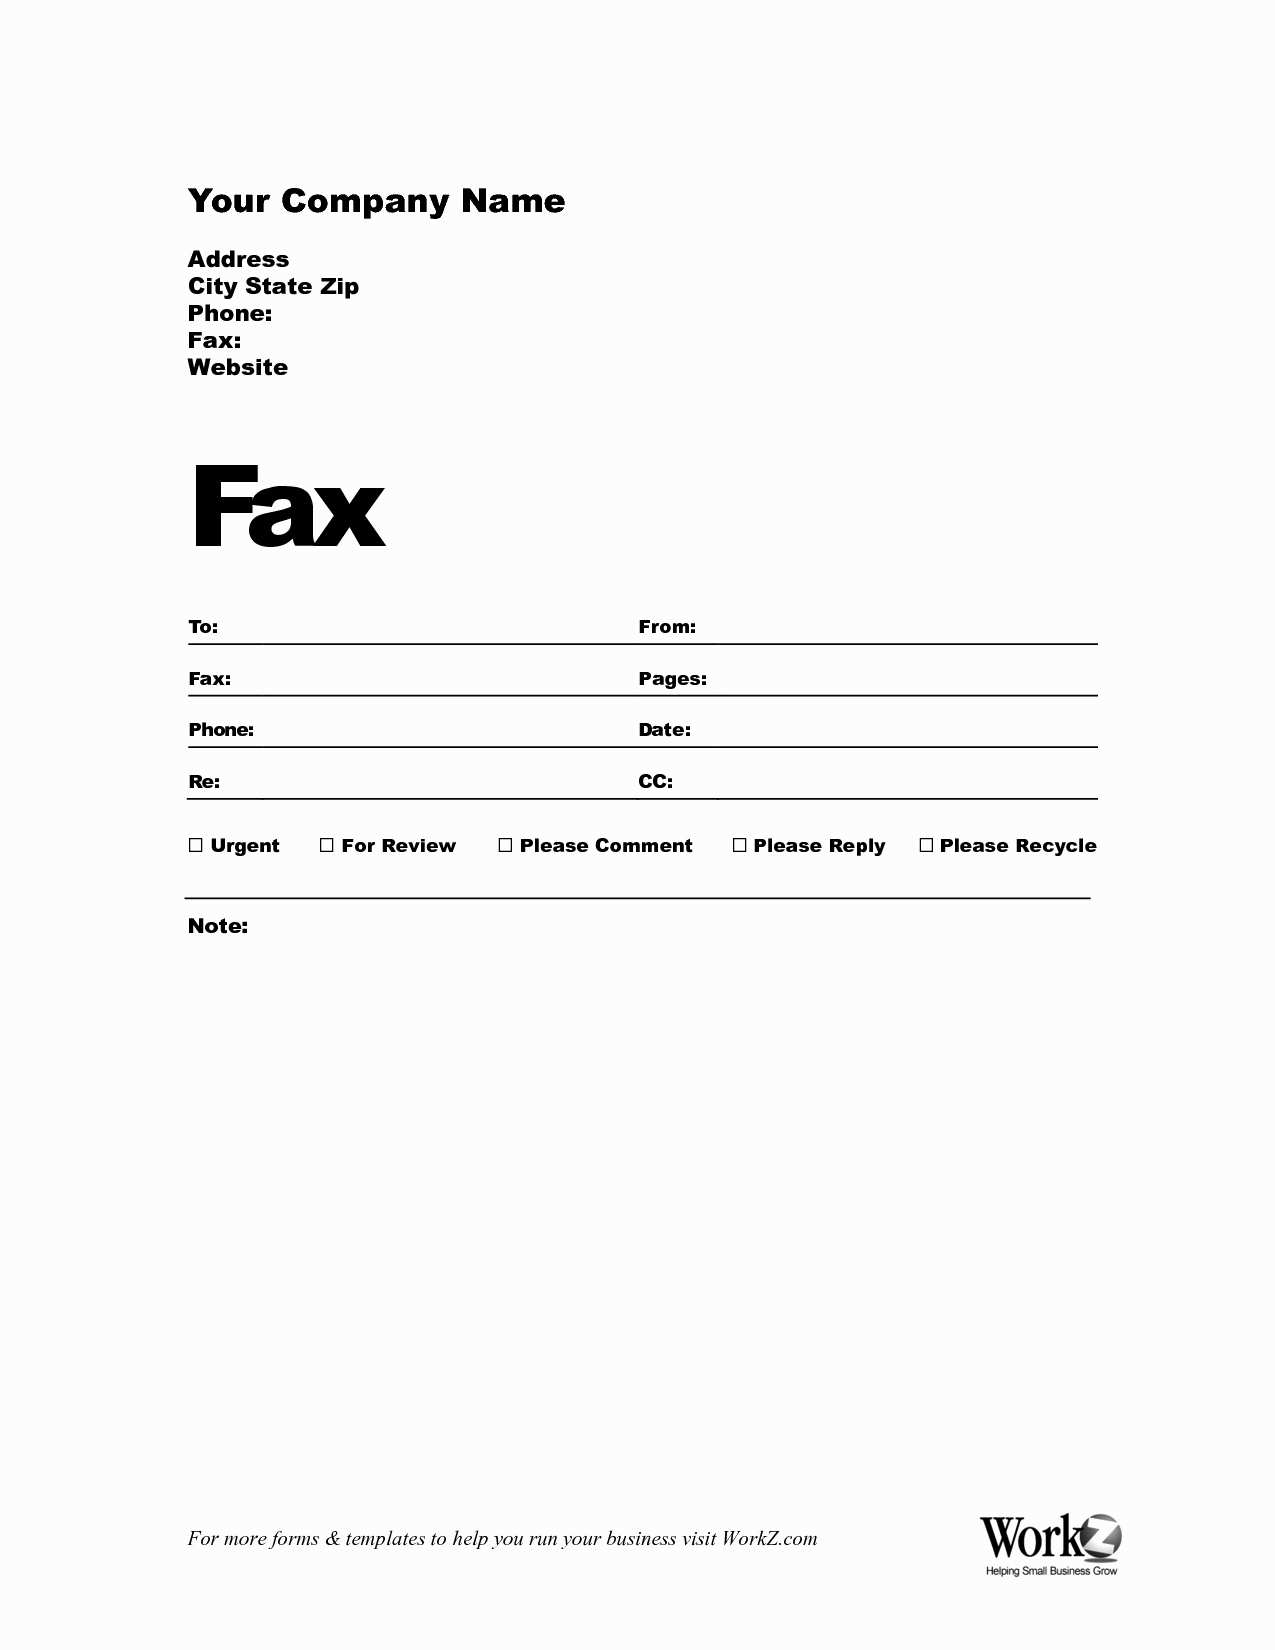 Cover Letter and Resume Template Word - Sample Resume and Cover Letter Beautiful Executive Resume Templates